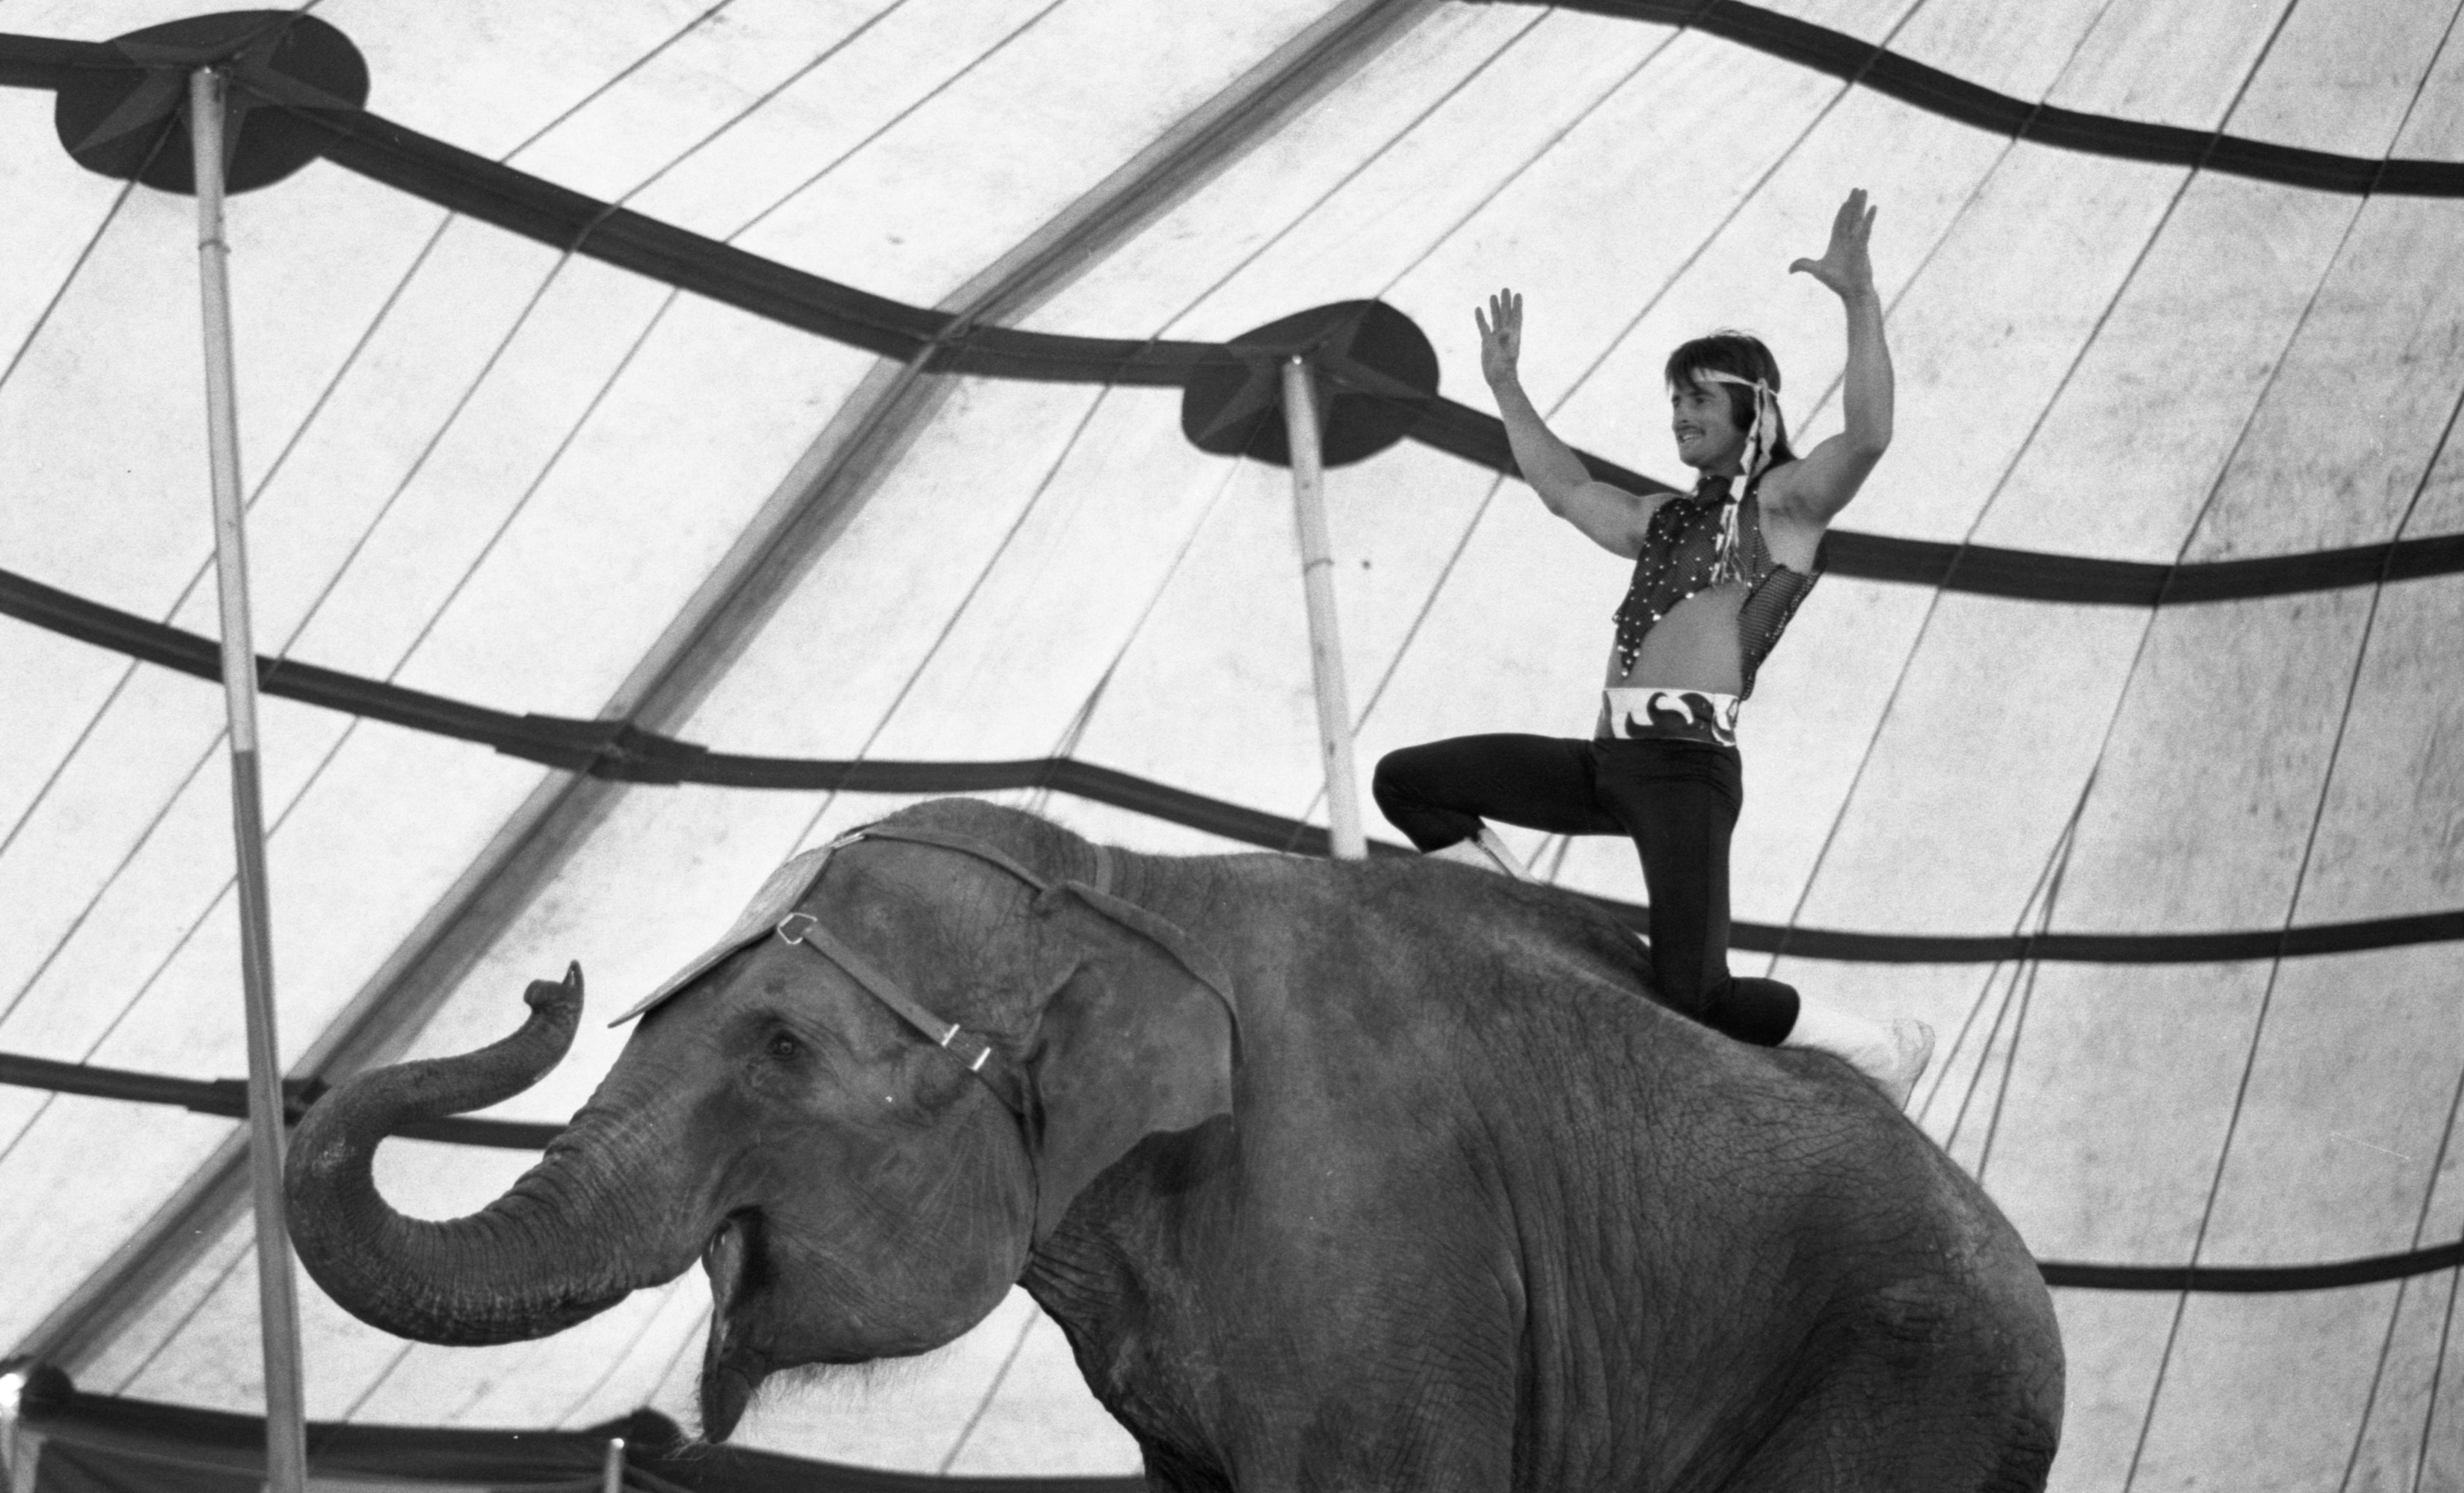 Royal Hanneford Circus Performer Rides An Elephant At The Brighton Mall, June 1984 image